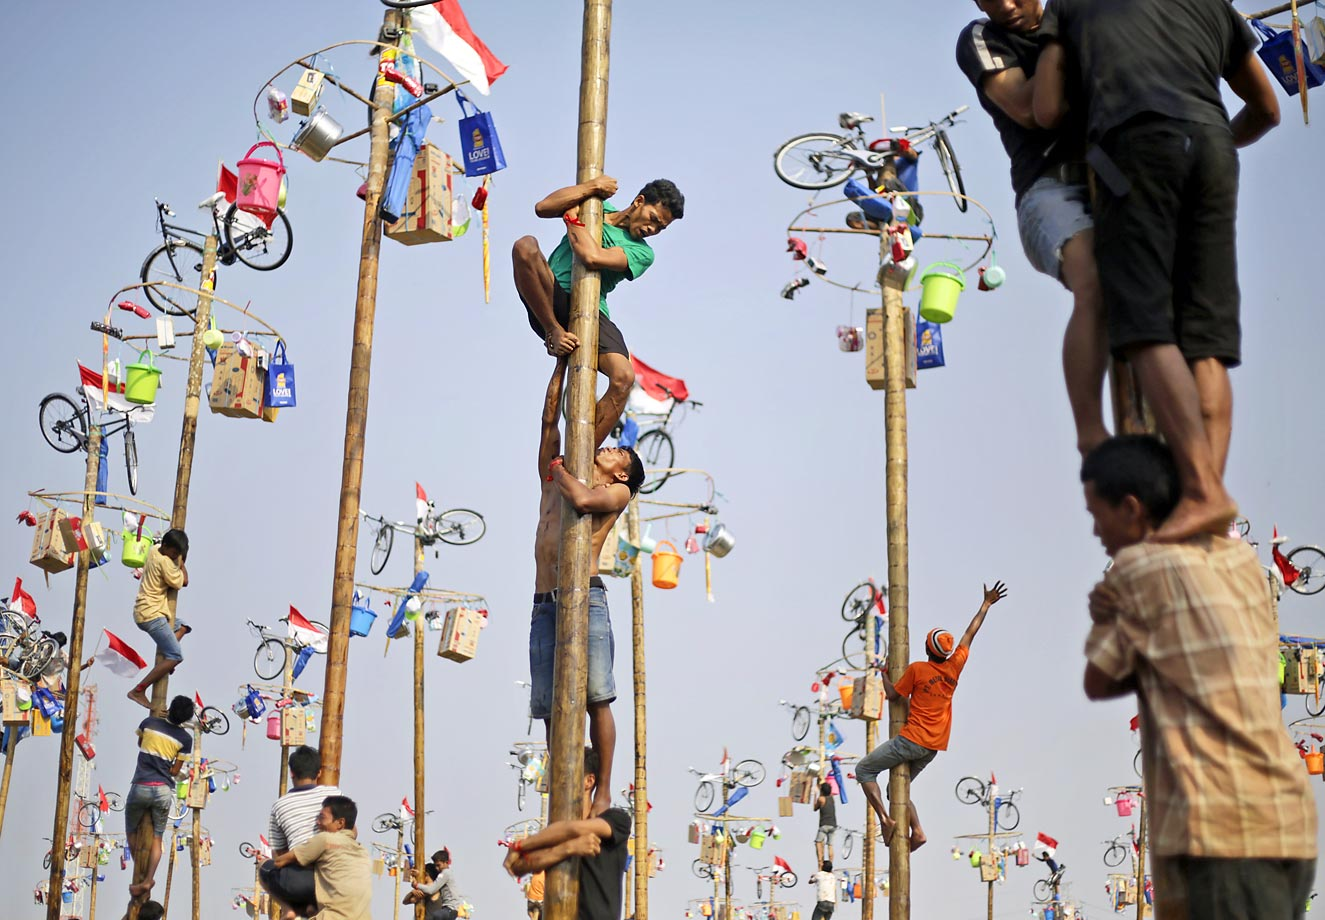 Participants struggle to reach the prizes during a greased-pole climbing competition in Jakarta, Indonesia.  The country is celebrating the 69th anniversary of its independence from the Dutch colonial rule.